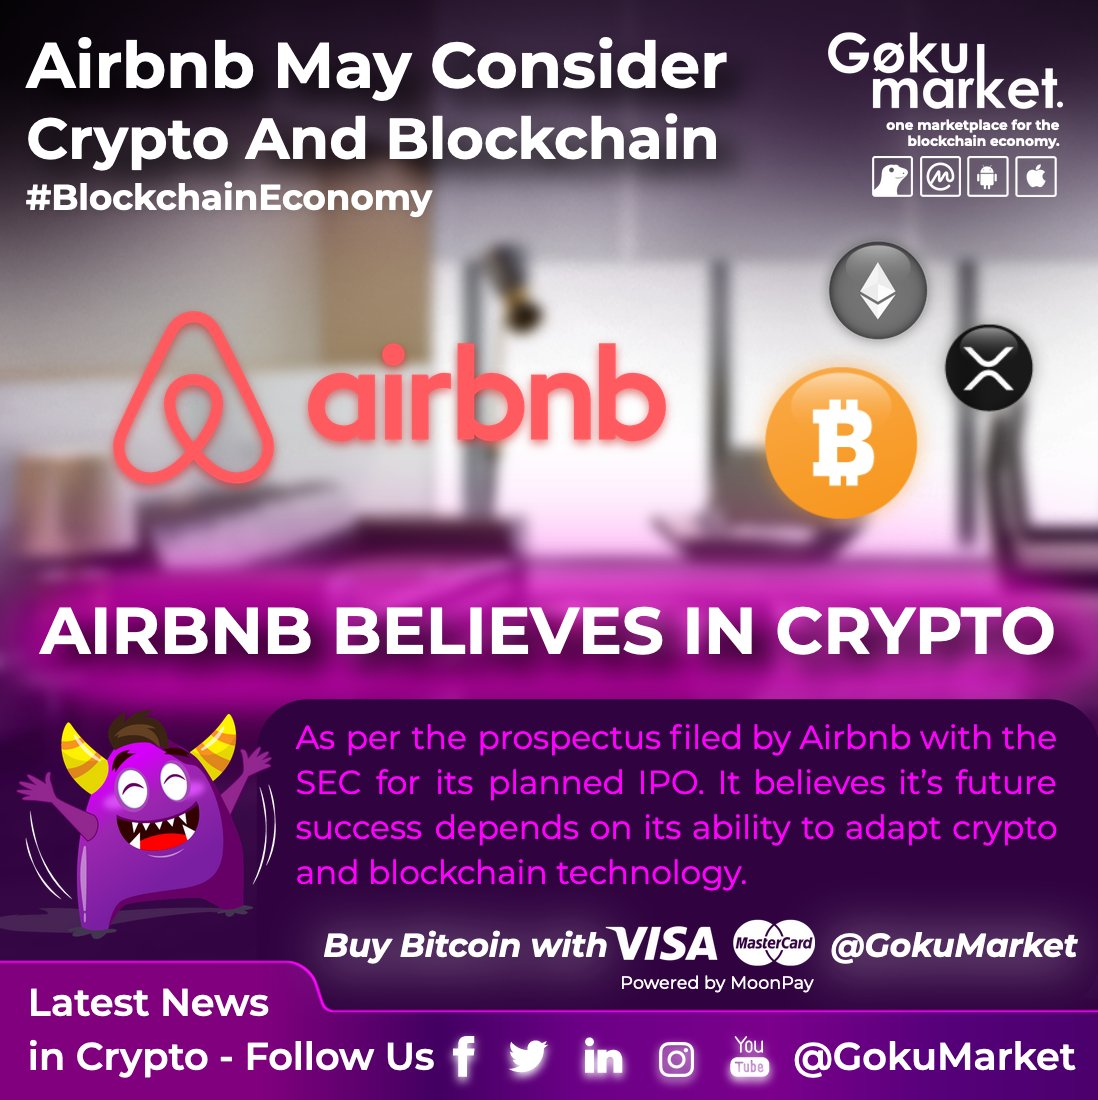 📣 @Airbnb May Consider Crypto And #Blockchain👏 🤩  💜 #AIRBNB BELIEVES IN #CRYPTO  💜 Buy #Bitcoin With #Visa @GokuMarket  #Follow #GokuMarket for more news & updates!!  👇 Web 🌐https://t.co/1zW0bzr9xm Android 📲https://t.co/EnorLN57pG  #blockchaineconomy #Airbnb #BuysBitcoin https://t.co/RmwZE13HOf